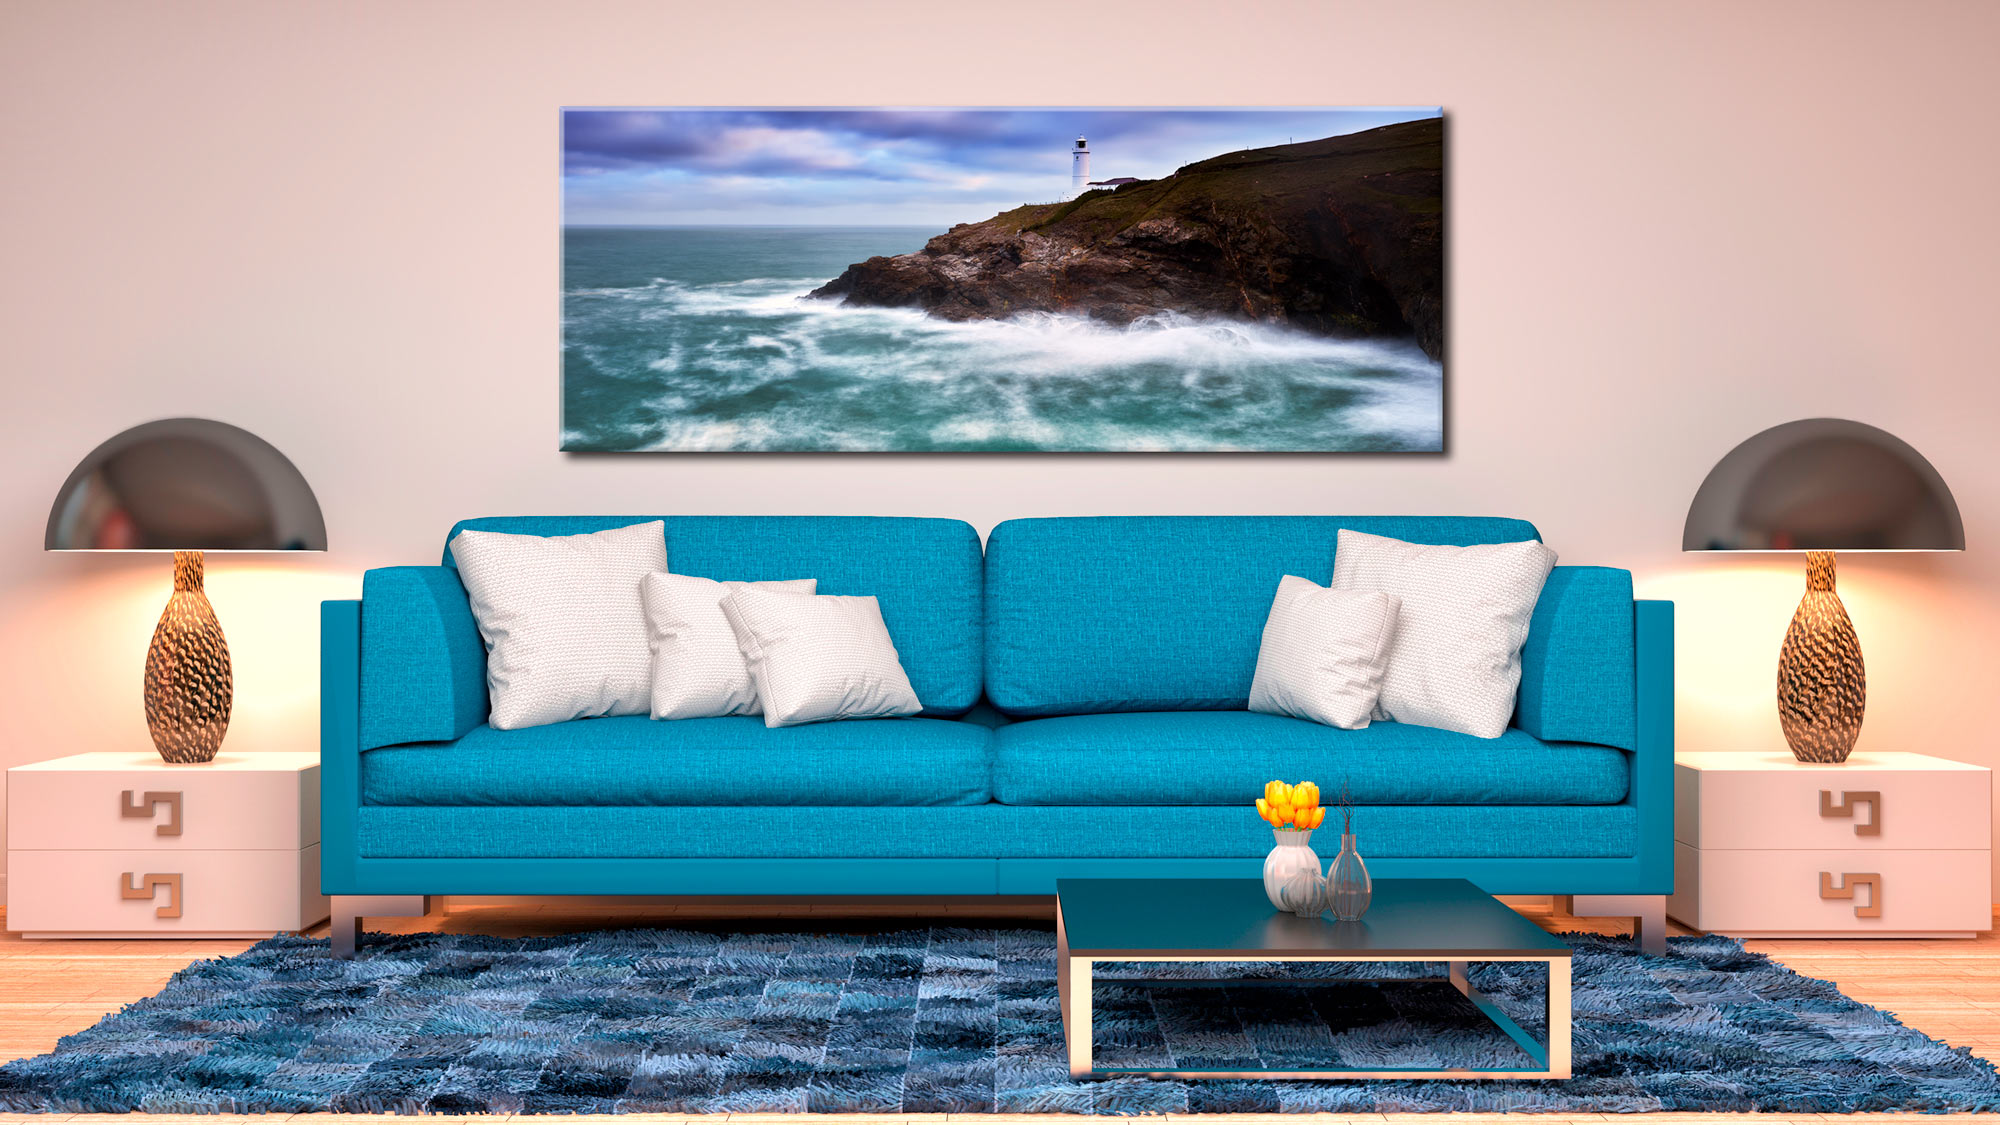 Stinking Cove and Trevose Head Lighthouse - Canvas Print on Wall